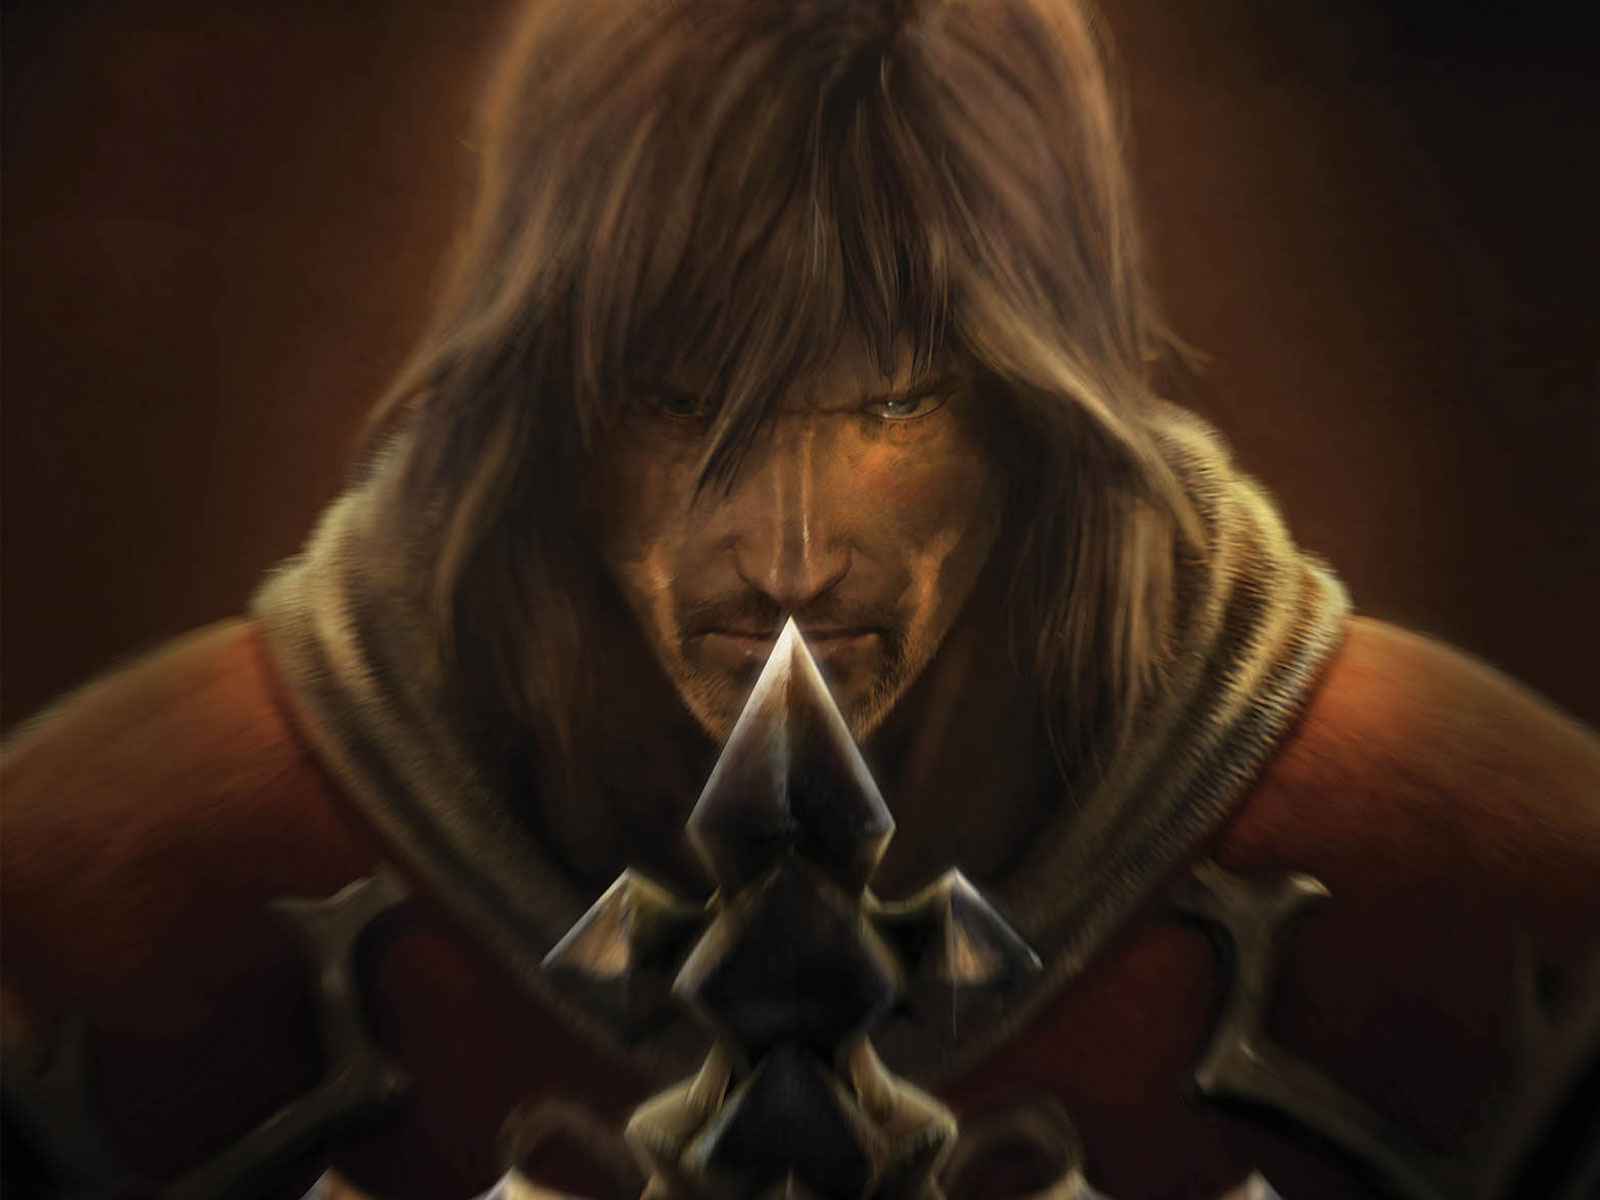 Castlevania: Lords of Shadow Twitter updates: Possible GOTY Edition and 3DS title?